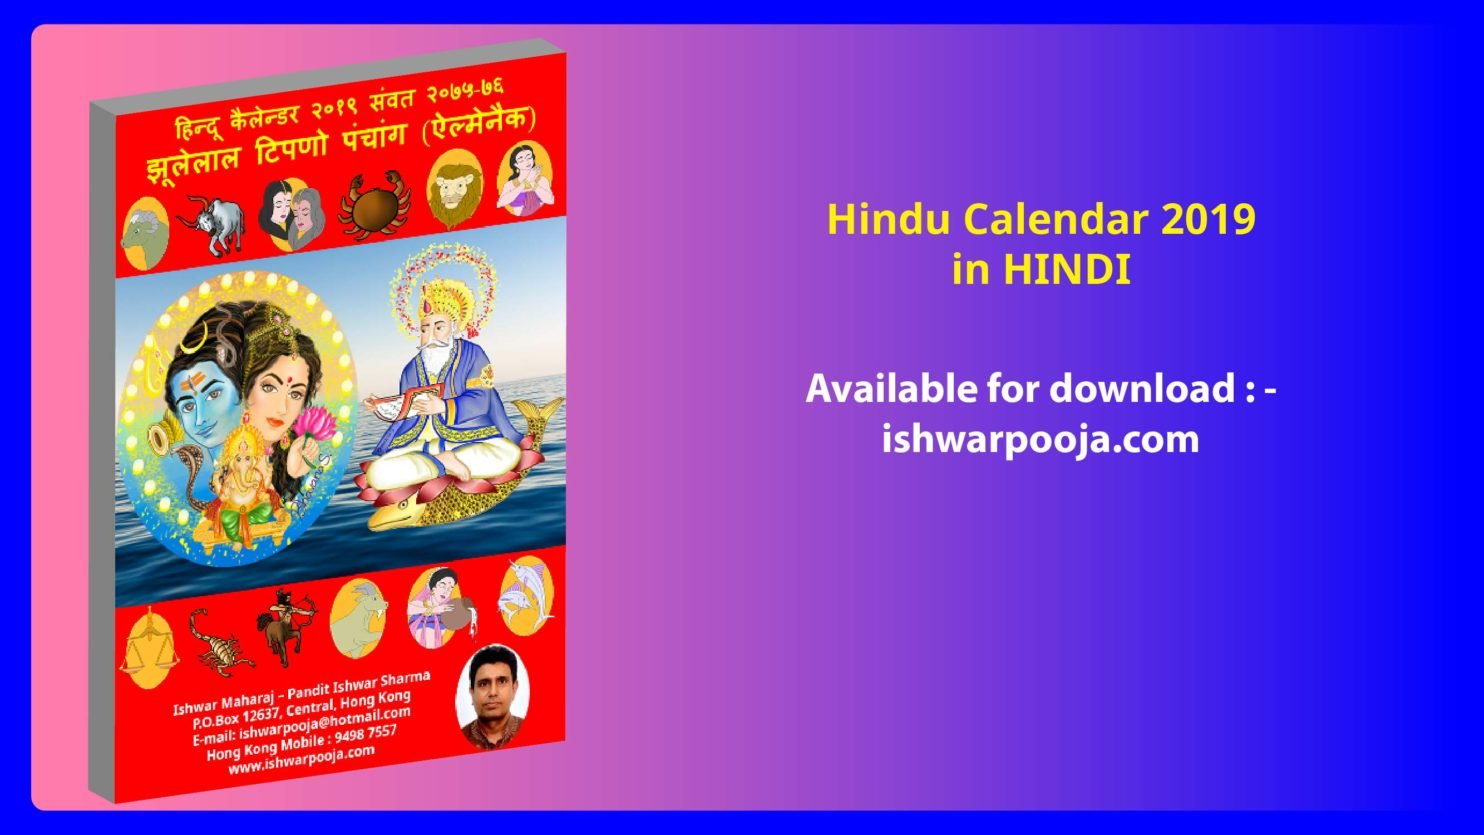 Hindu Calendar 2019 In Hindi - Ishwar Maharaj U Of R Calendar 2019